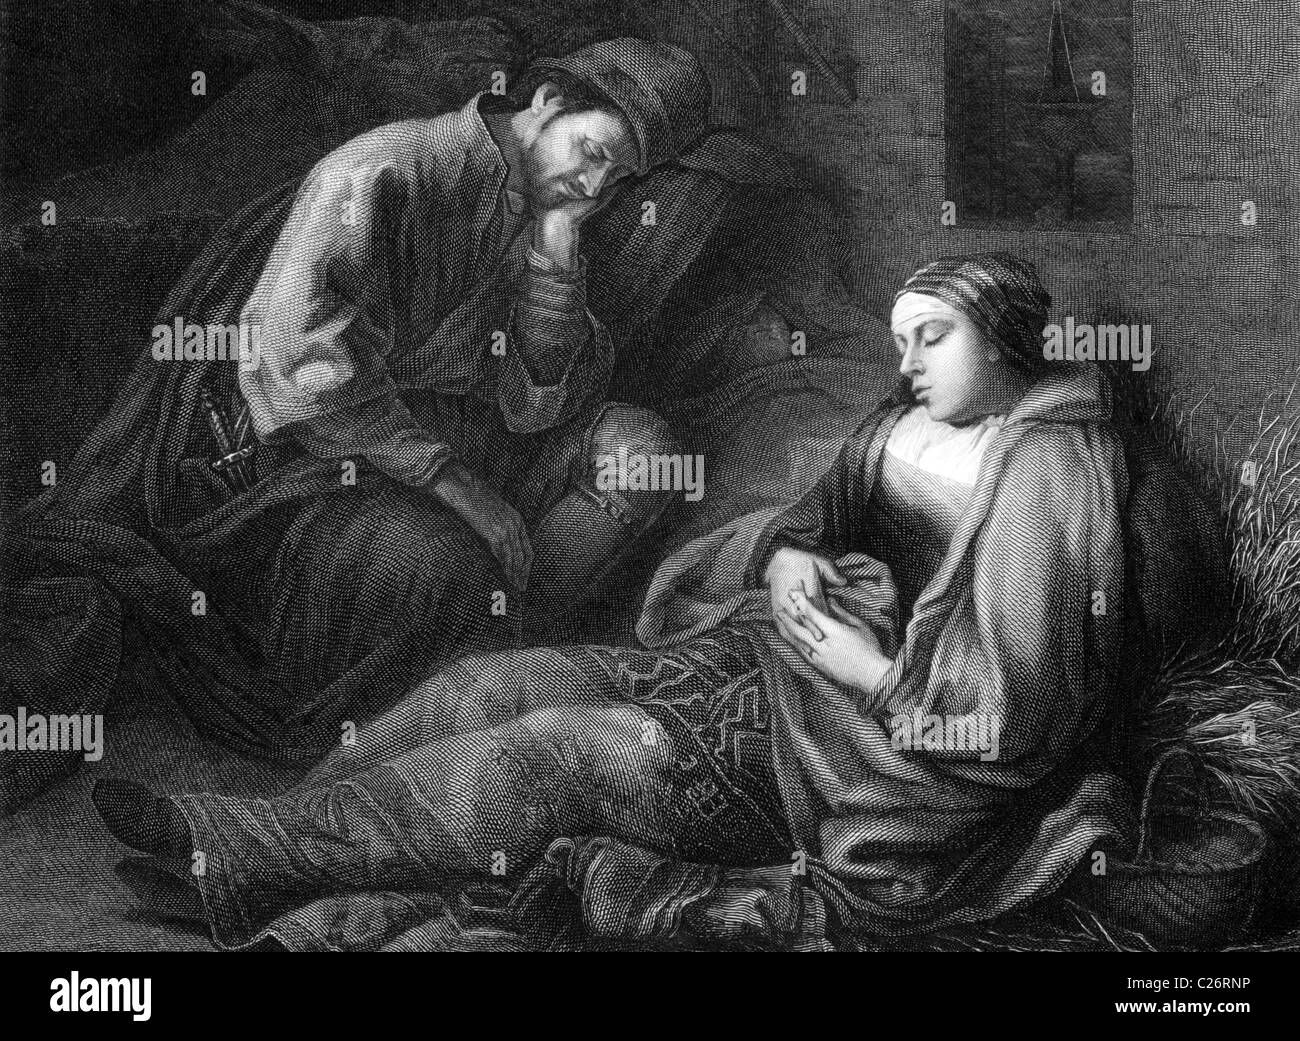 Weary travelers on engraving from 1875. Engraved by Mauduit after a painting by Rembrandt. - Stock Image